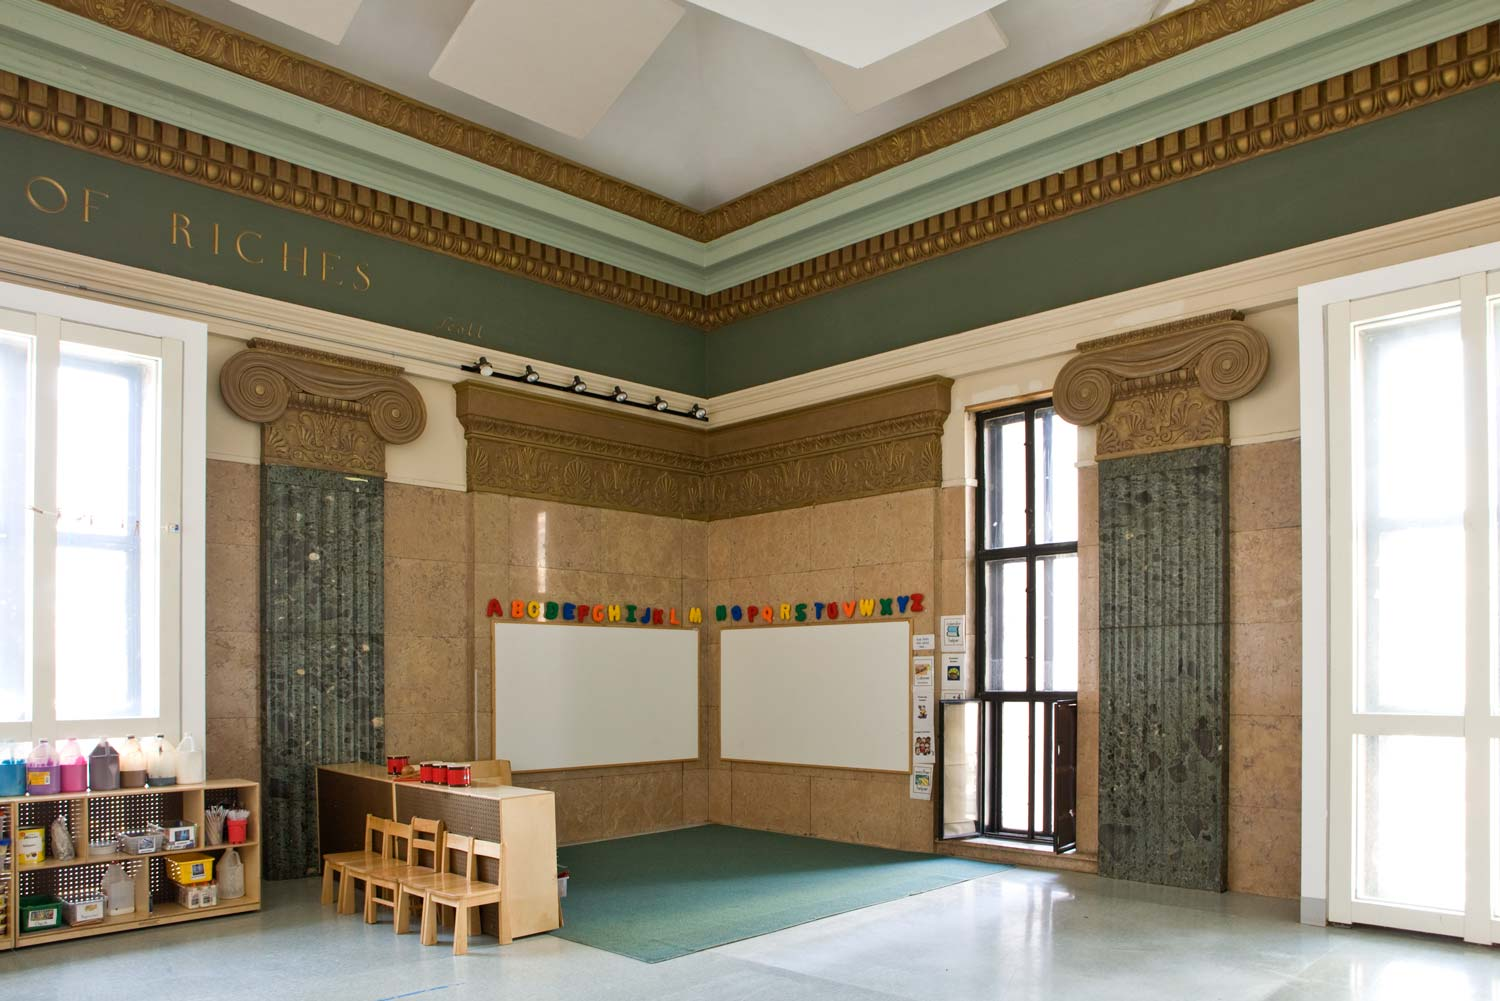 A new multi-level school in a vaulted former banking hall. Project by OCV Architects.